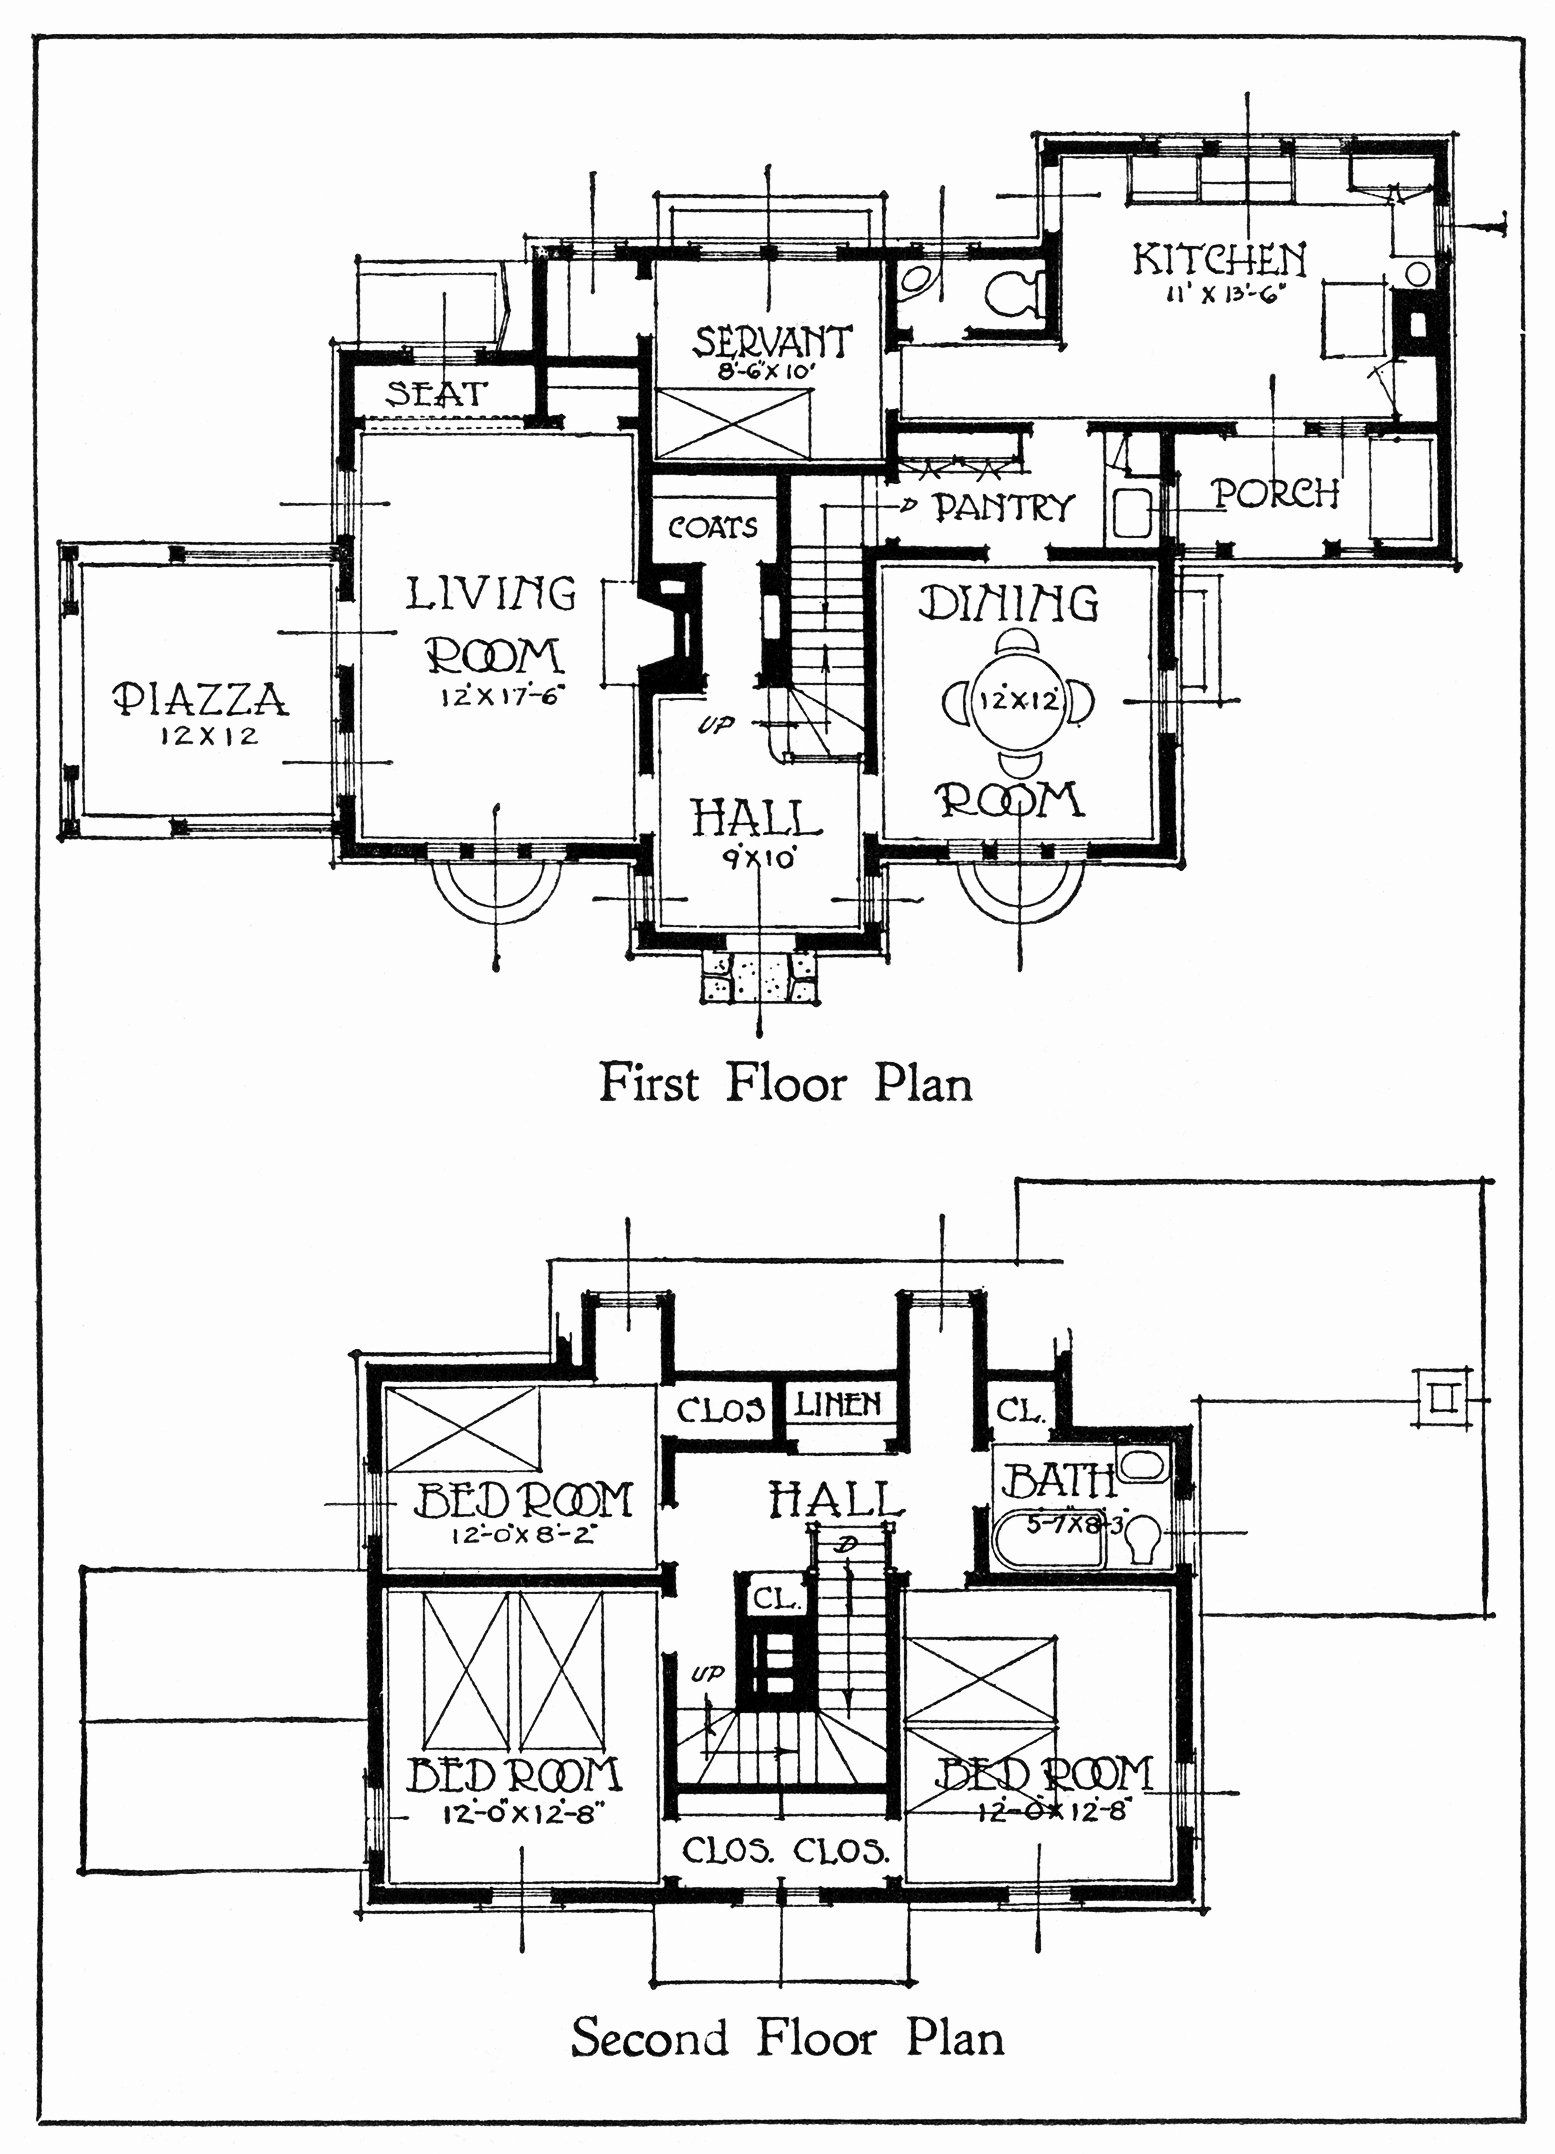 Farmhouse Colonial House Plans Awesome House Old Fashioned Plans Farmhouse Farm Style Homes Home In 2020 Vintage House Plans Floor Plans Farmhouse Style House Plans